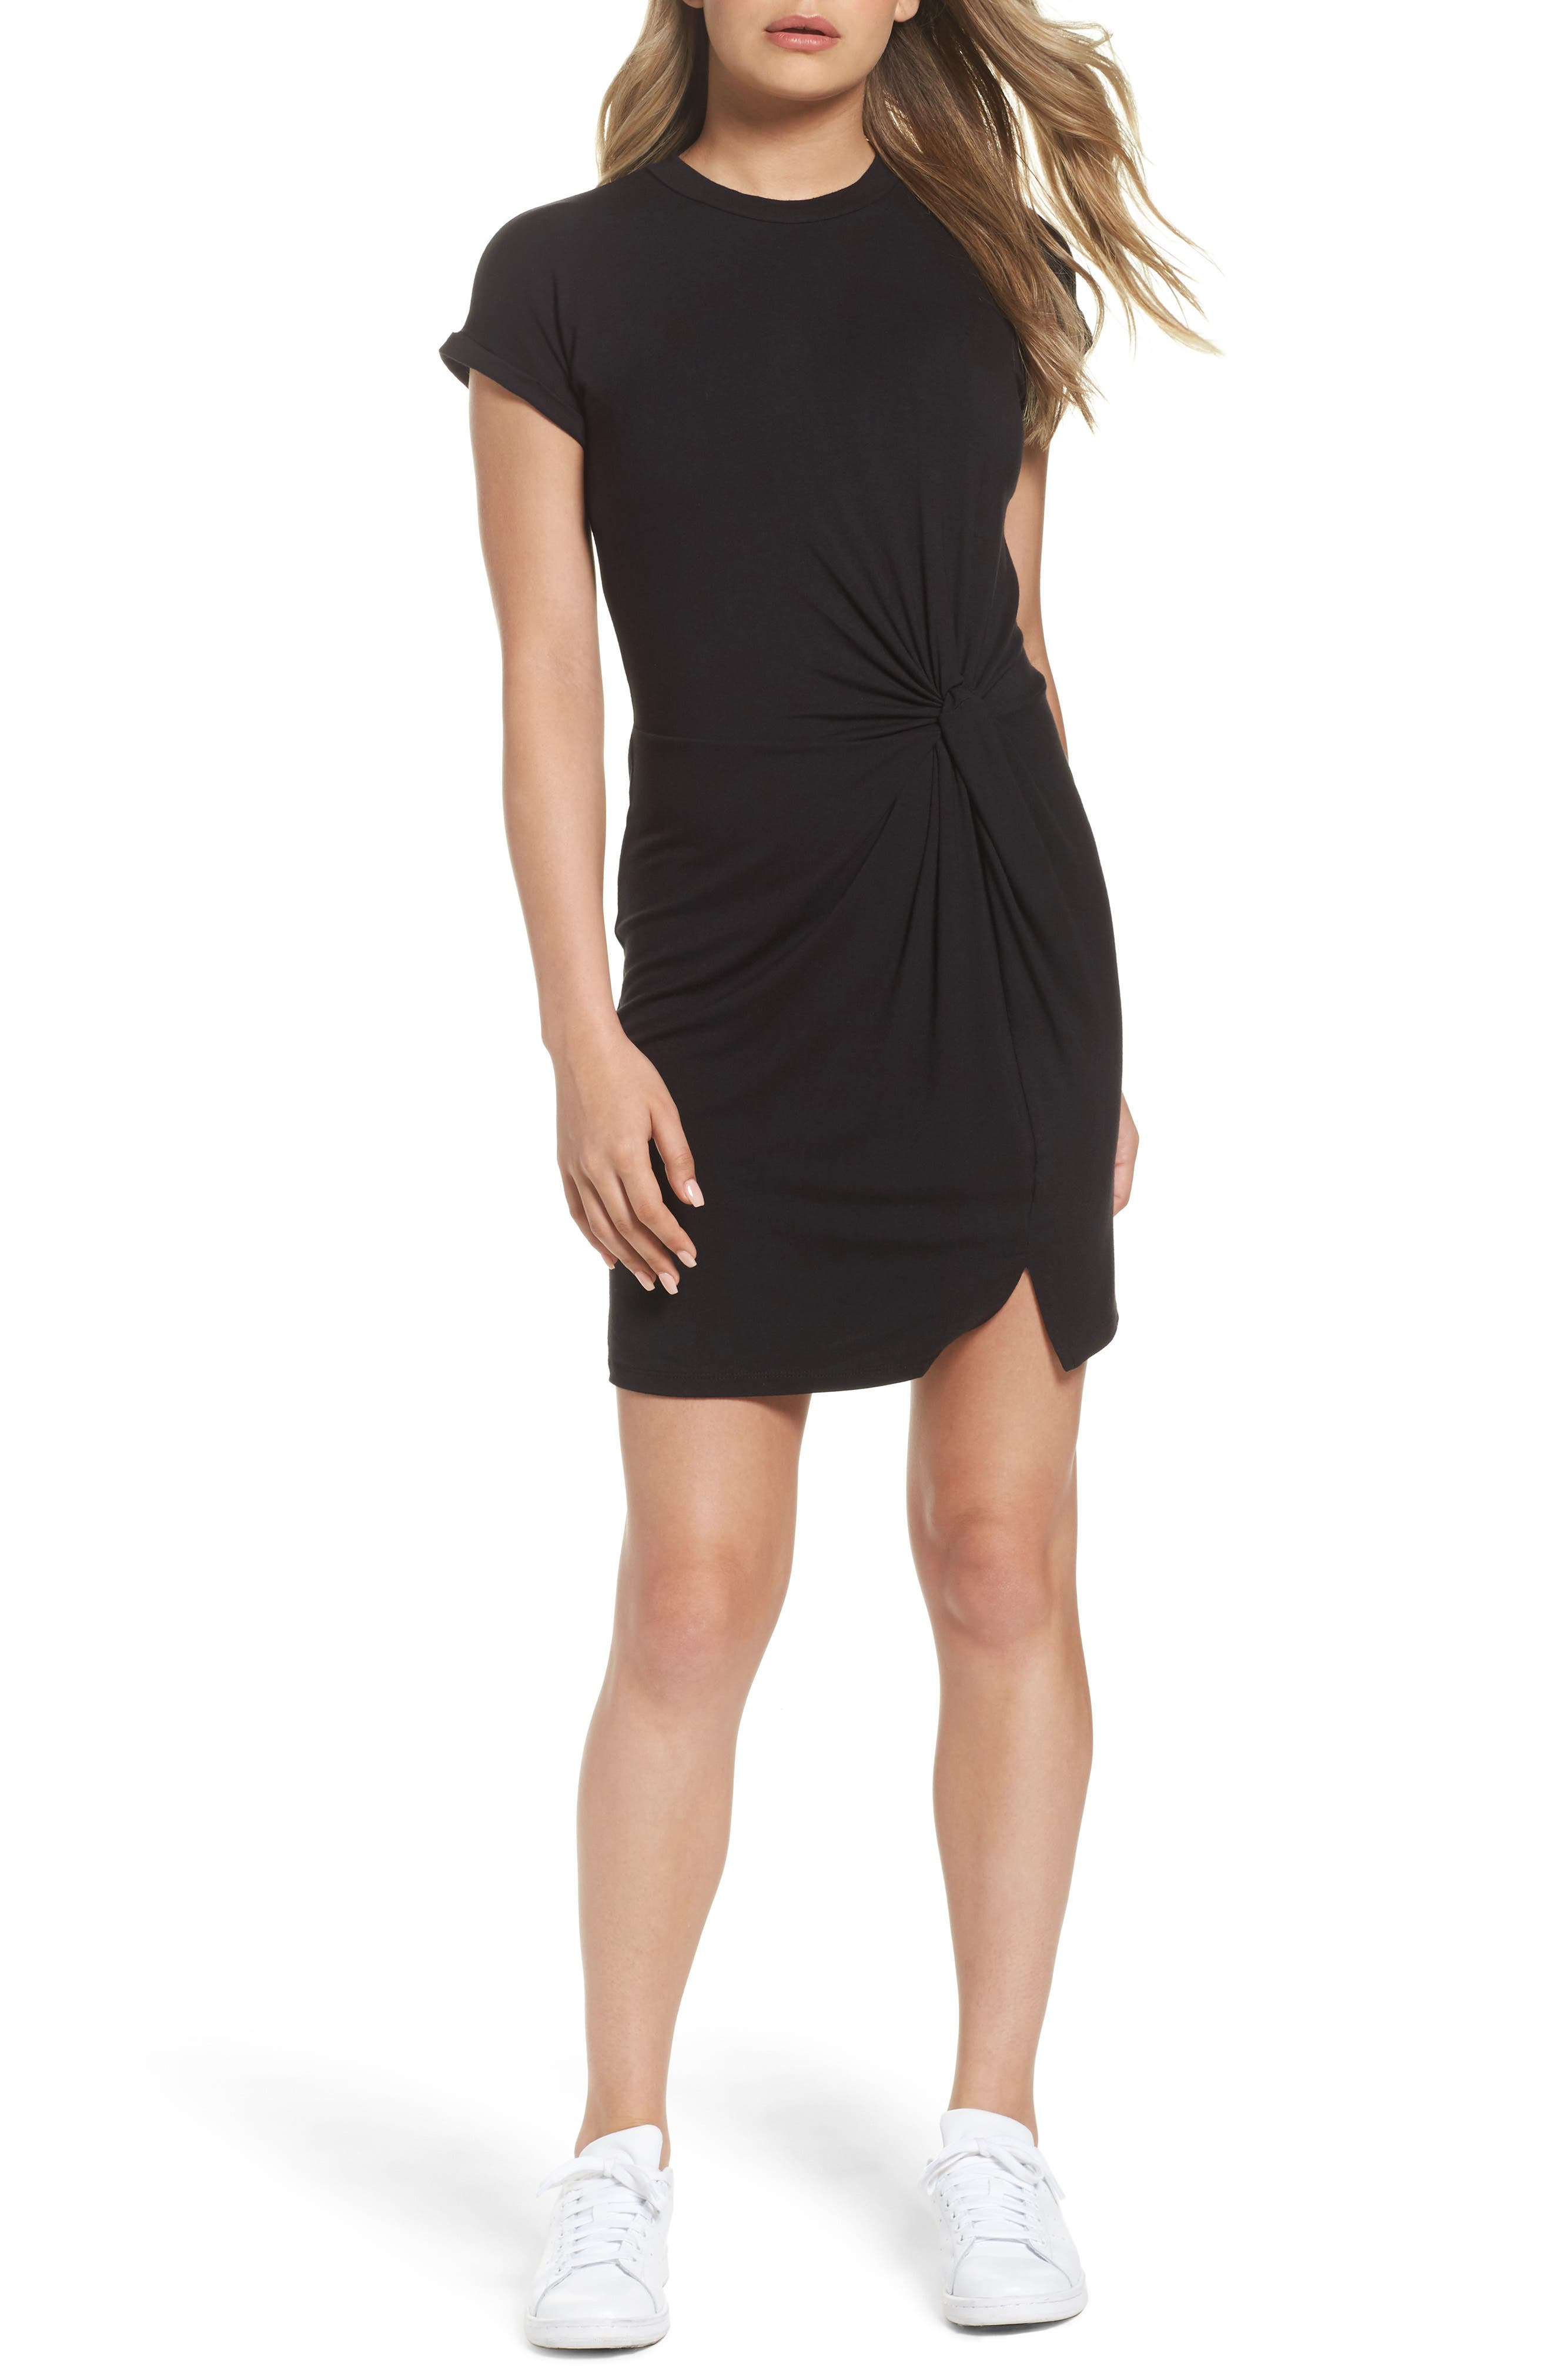 Main Image - Mary & Mabel Knot Front T-Shirt Dress